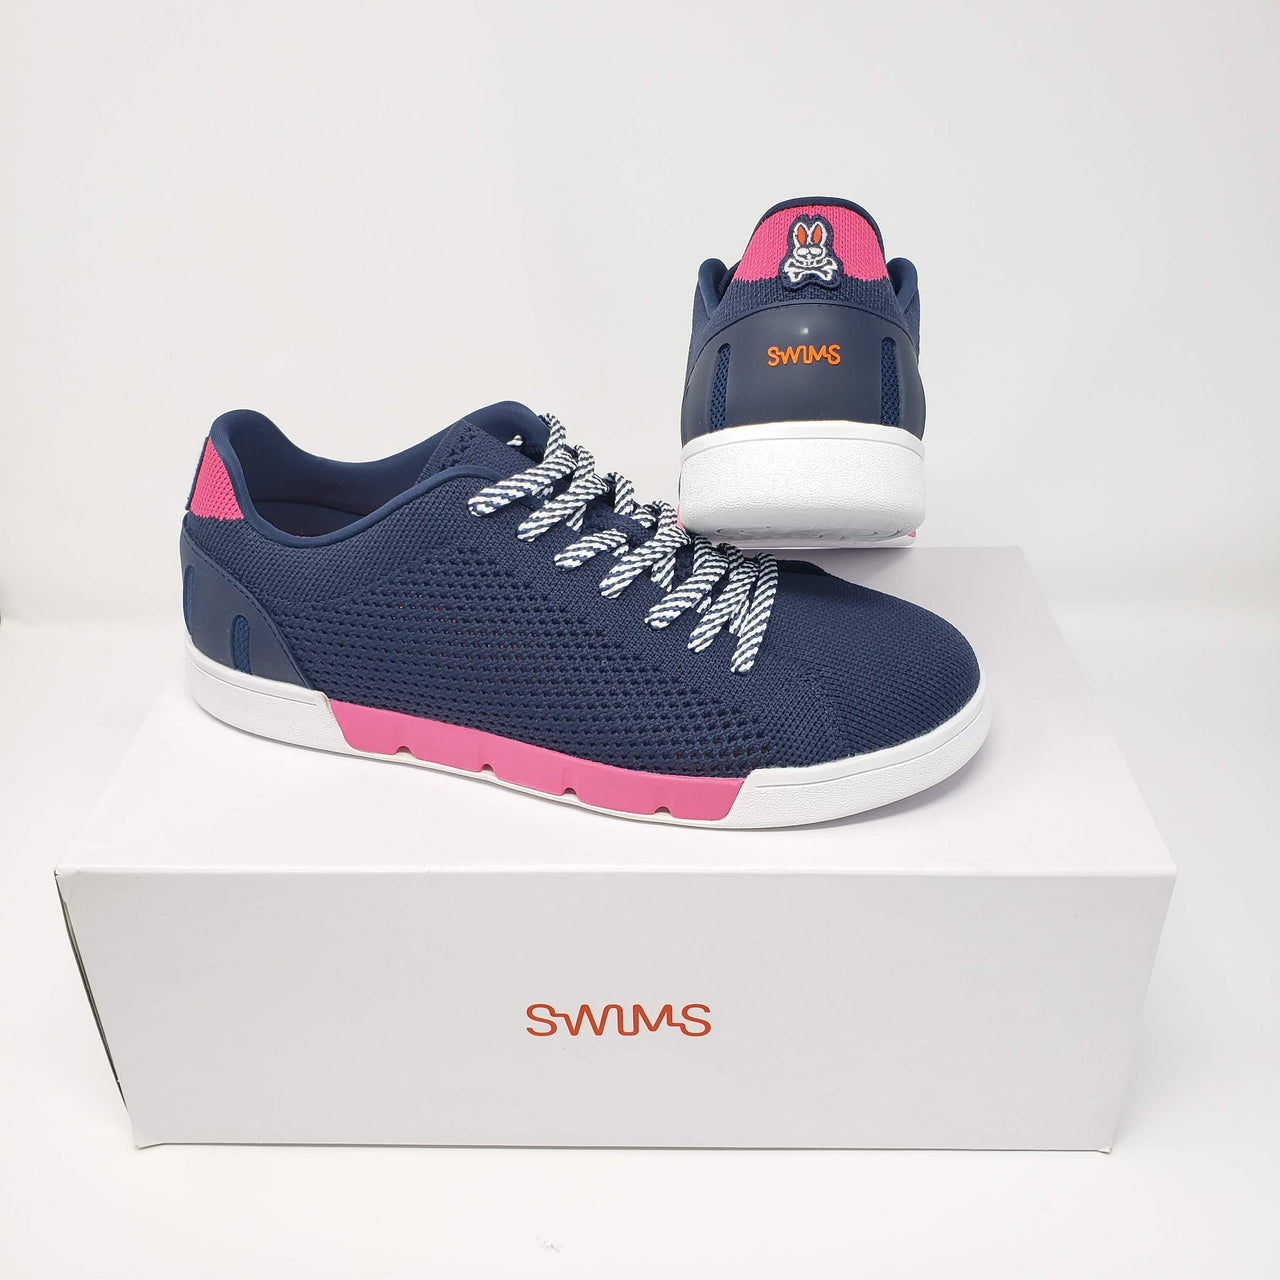 Psycho Bunny x SWIMS Breeze Tennis Knit - Navy